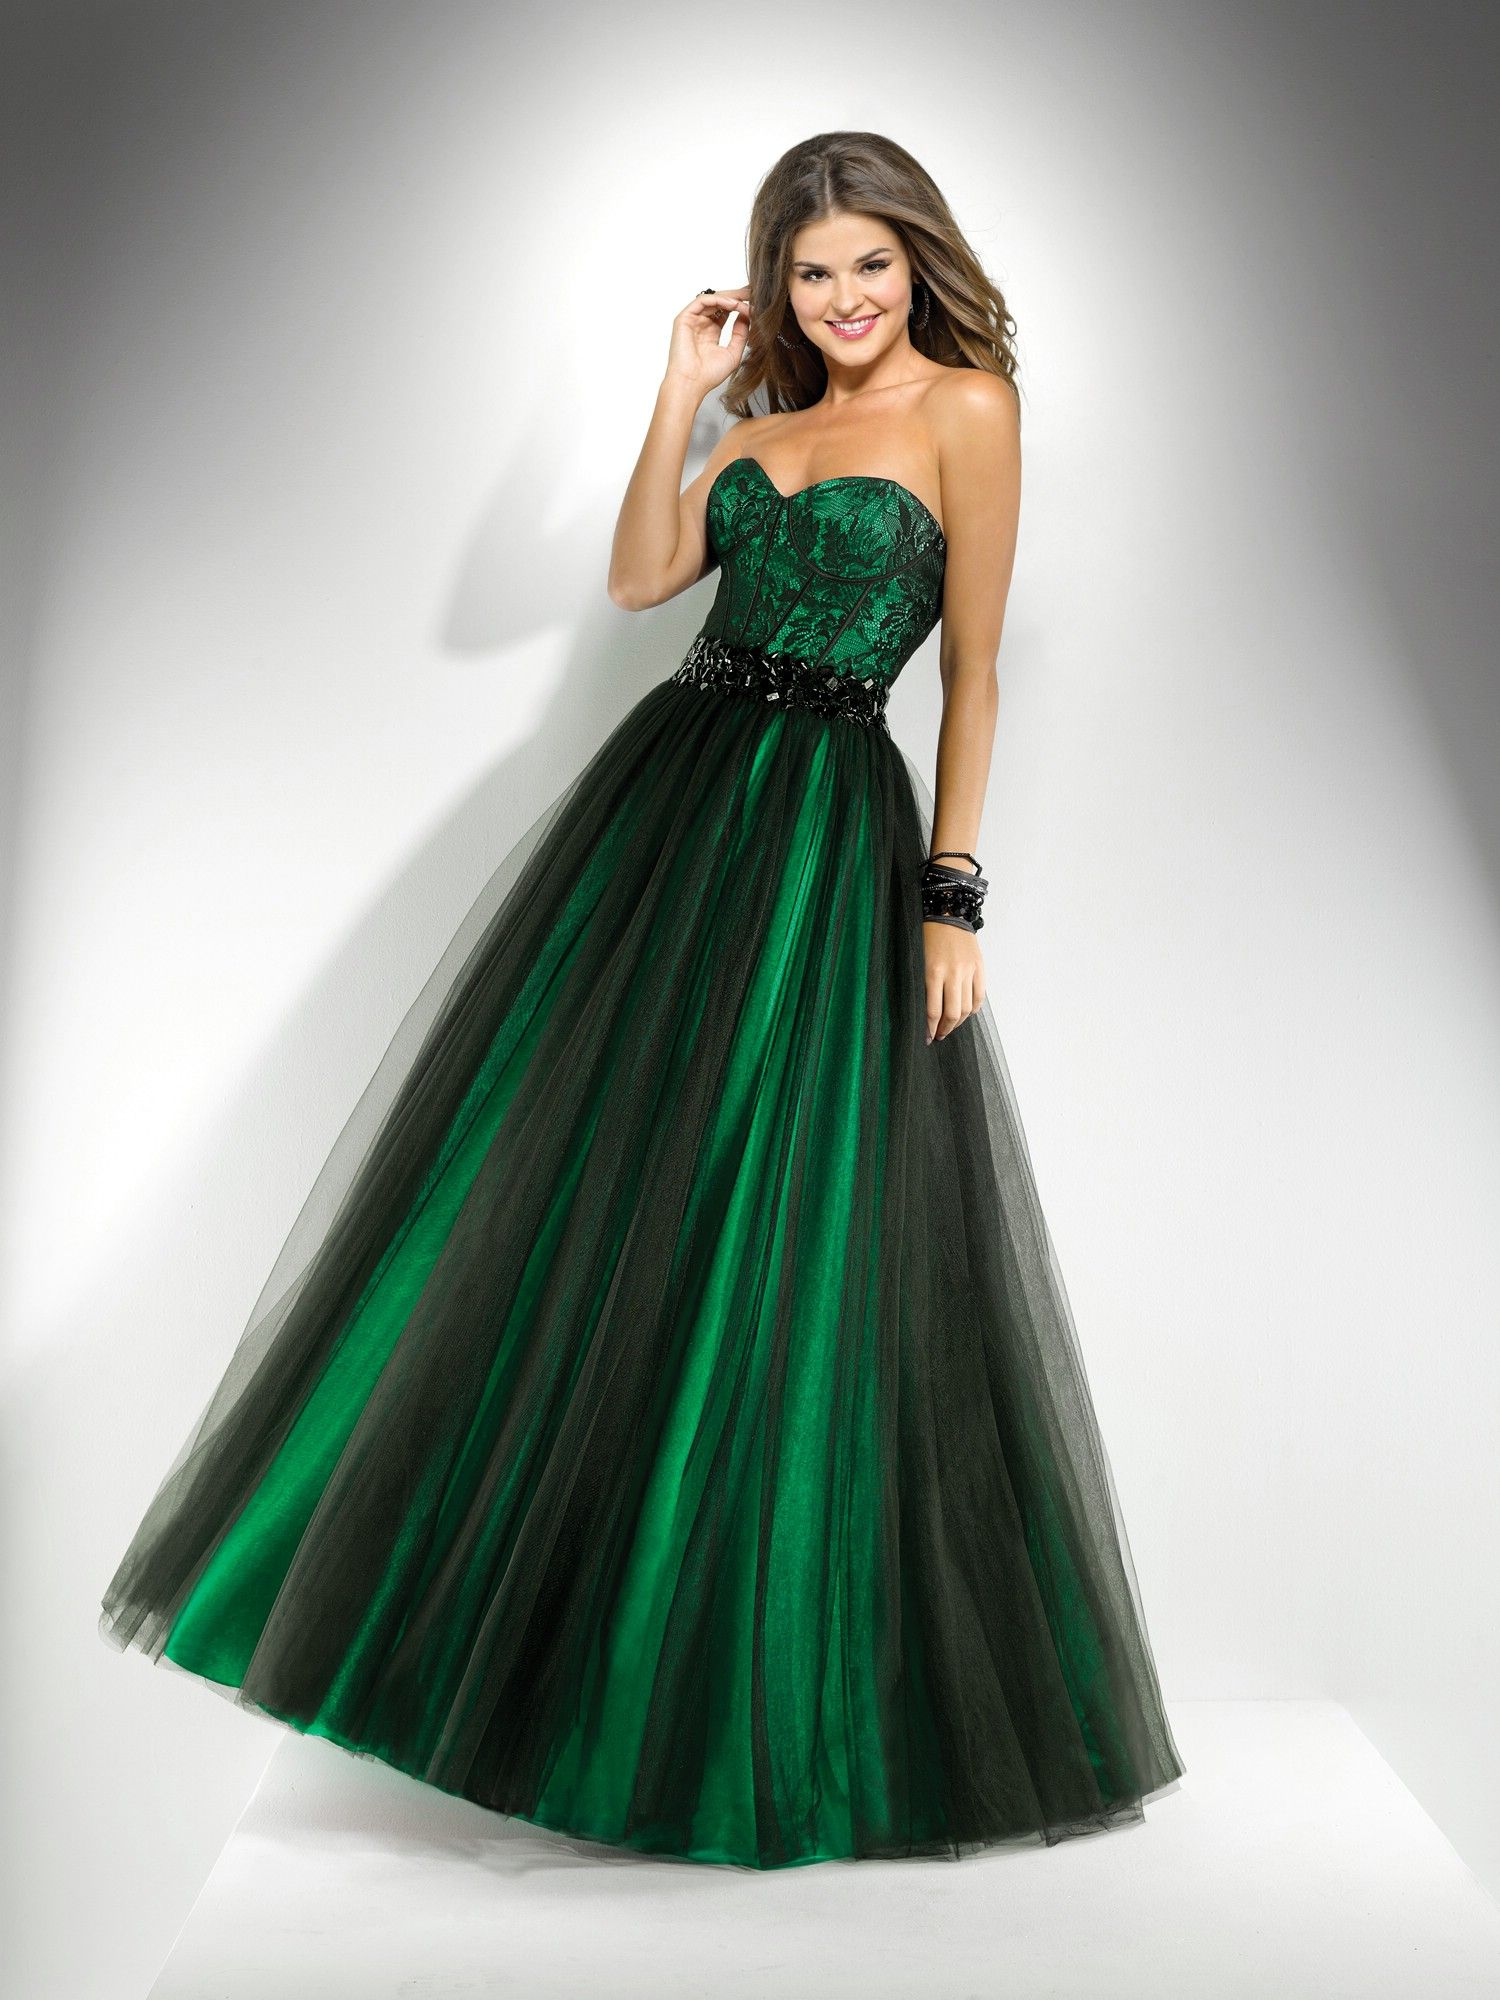 Emerald green prom dress 2018  Think im gonna go for an emerald dress this year Flirt  Style